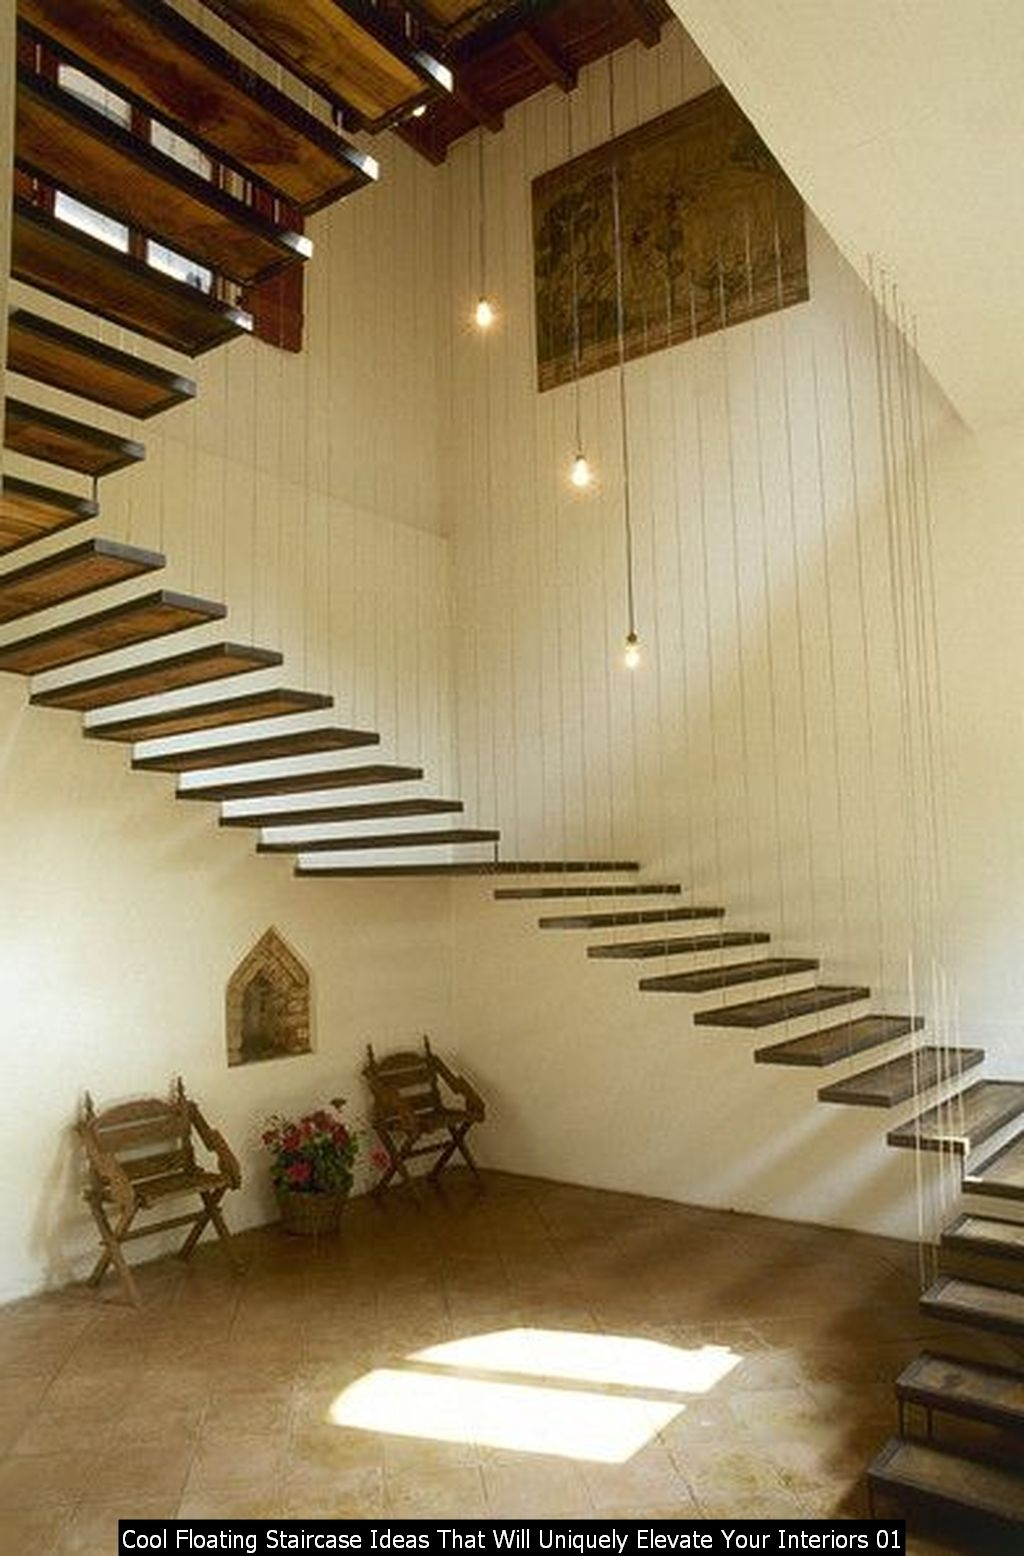 Cool Floating Staircase Ideas That Will Uniquely Elevate Your Interiors 01